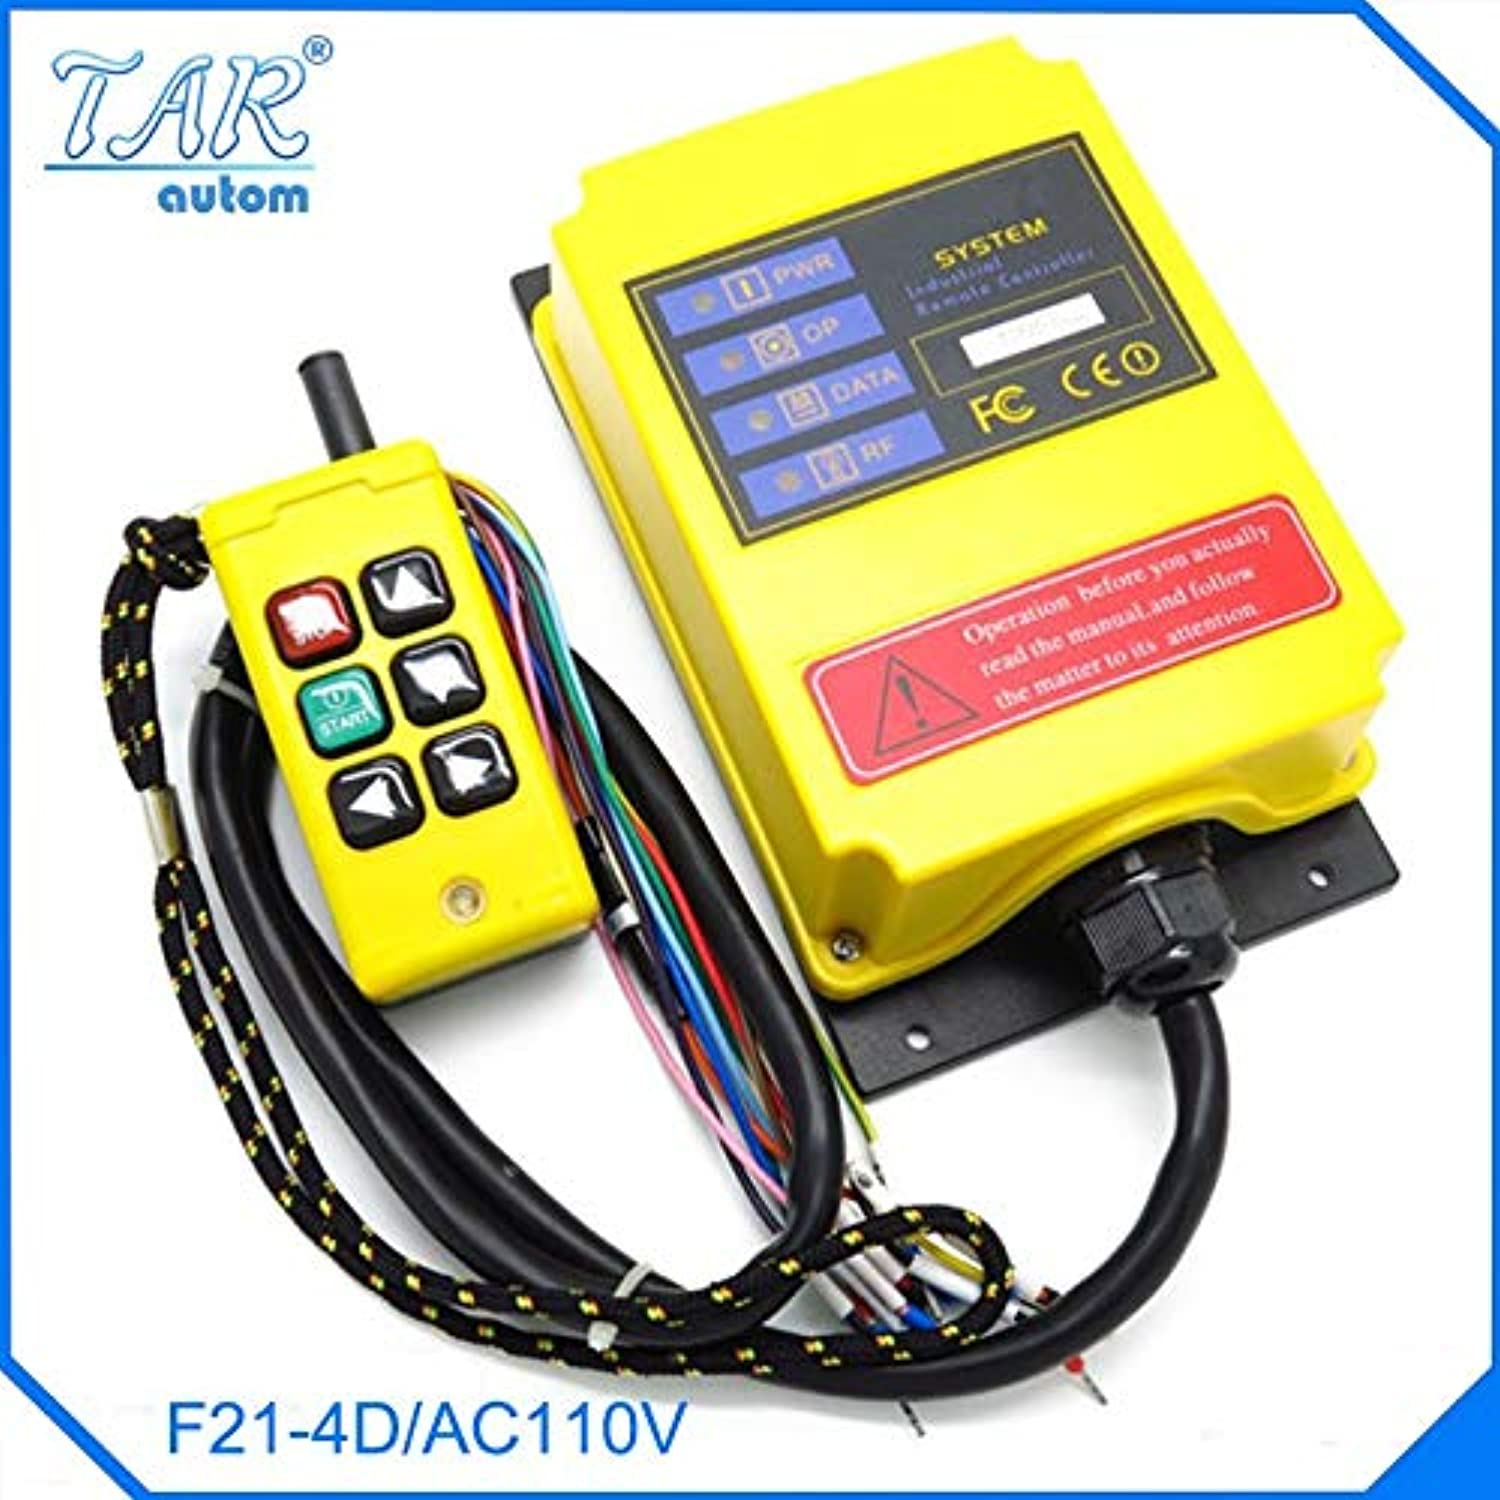 Two Speed FourDirection Crane Industrial Wireless Remote Control Transmitter 1 Receiver F21-4D AC110 Sensor Motion livolo